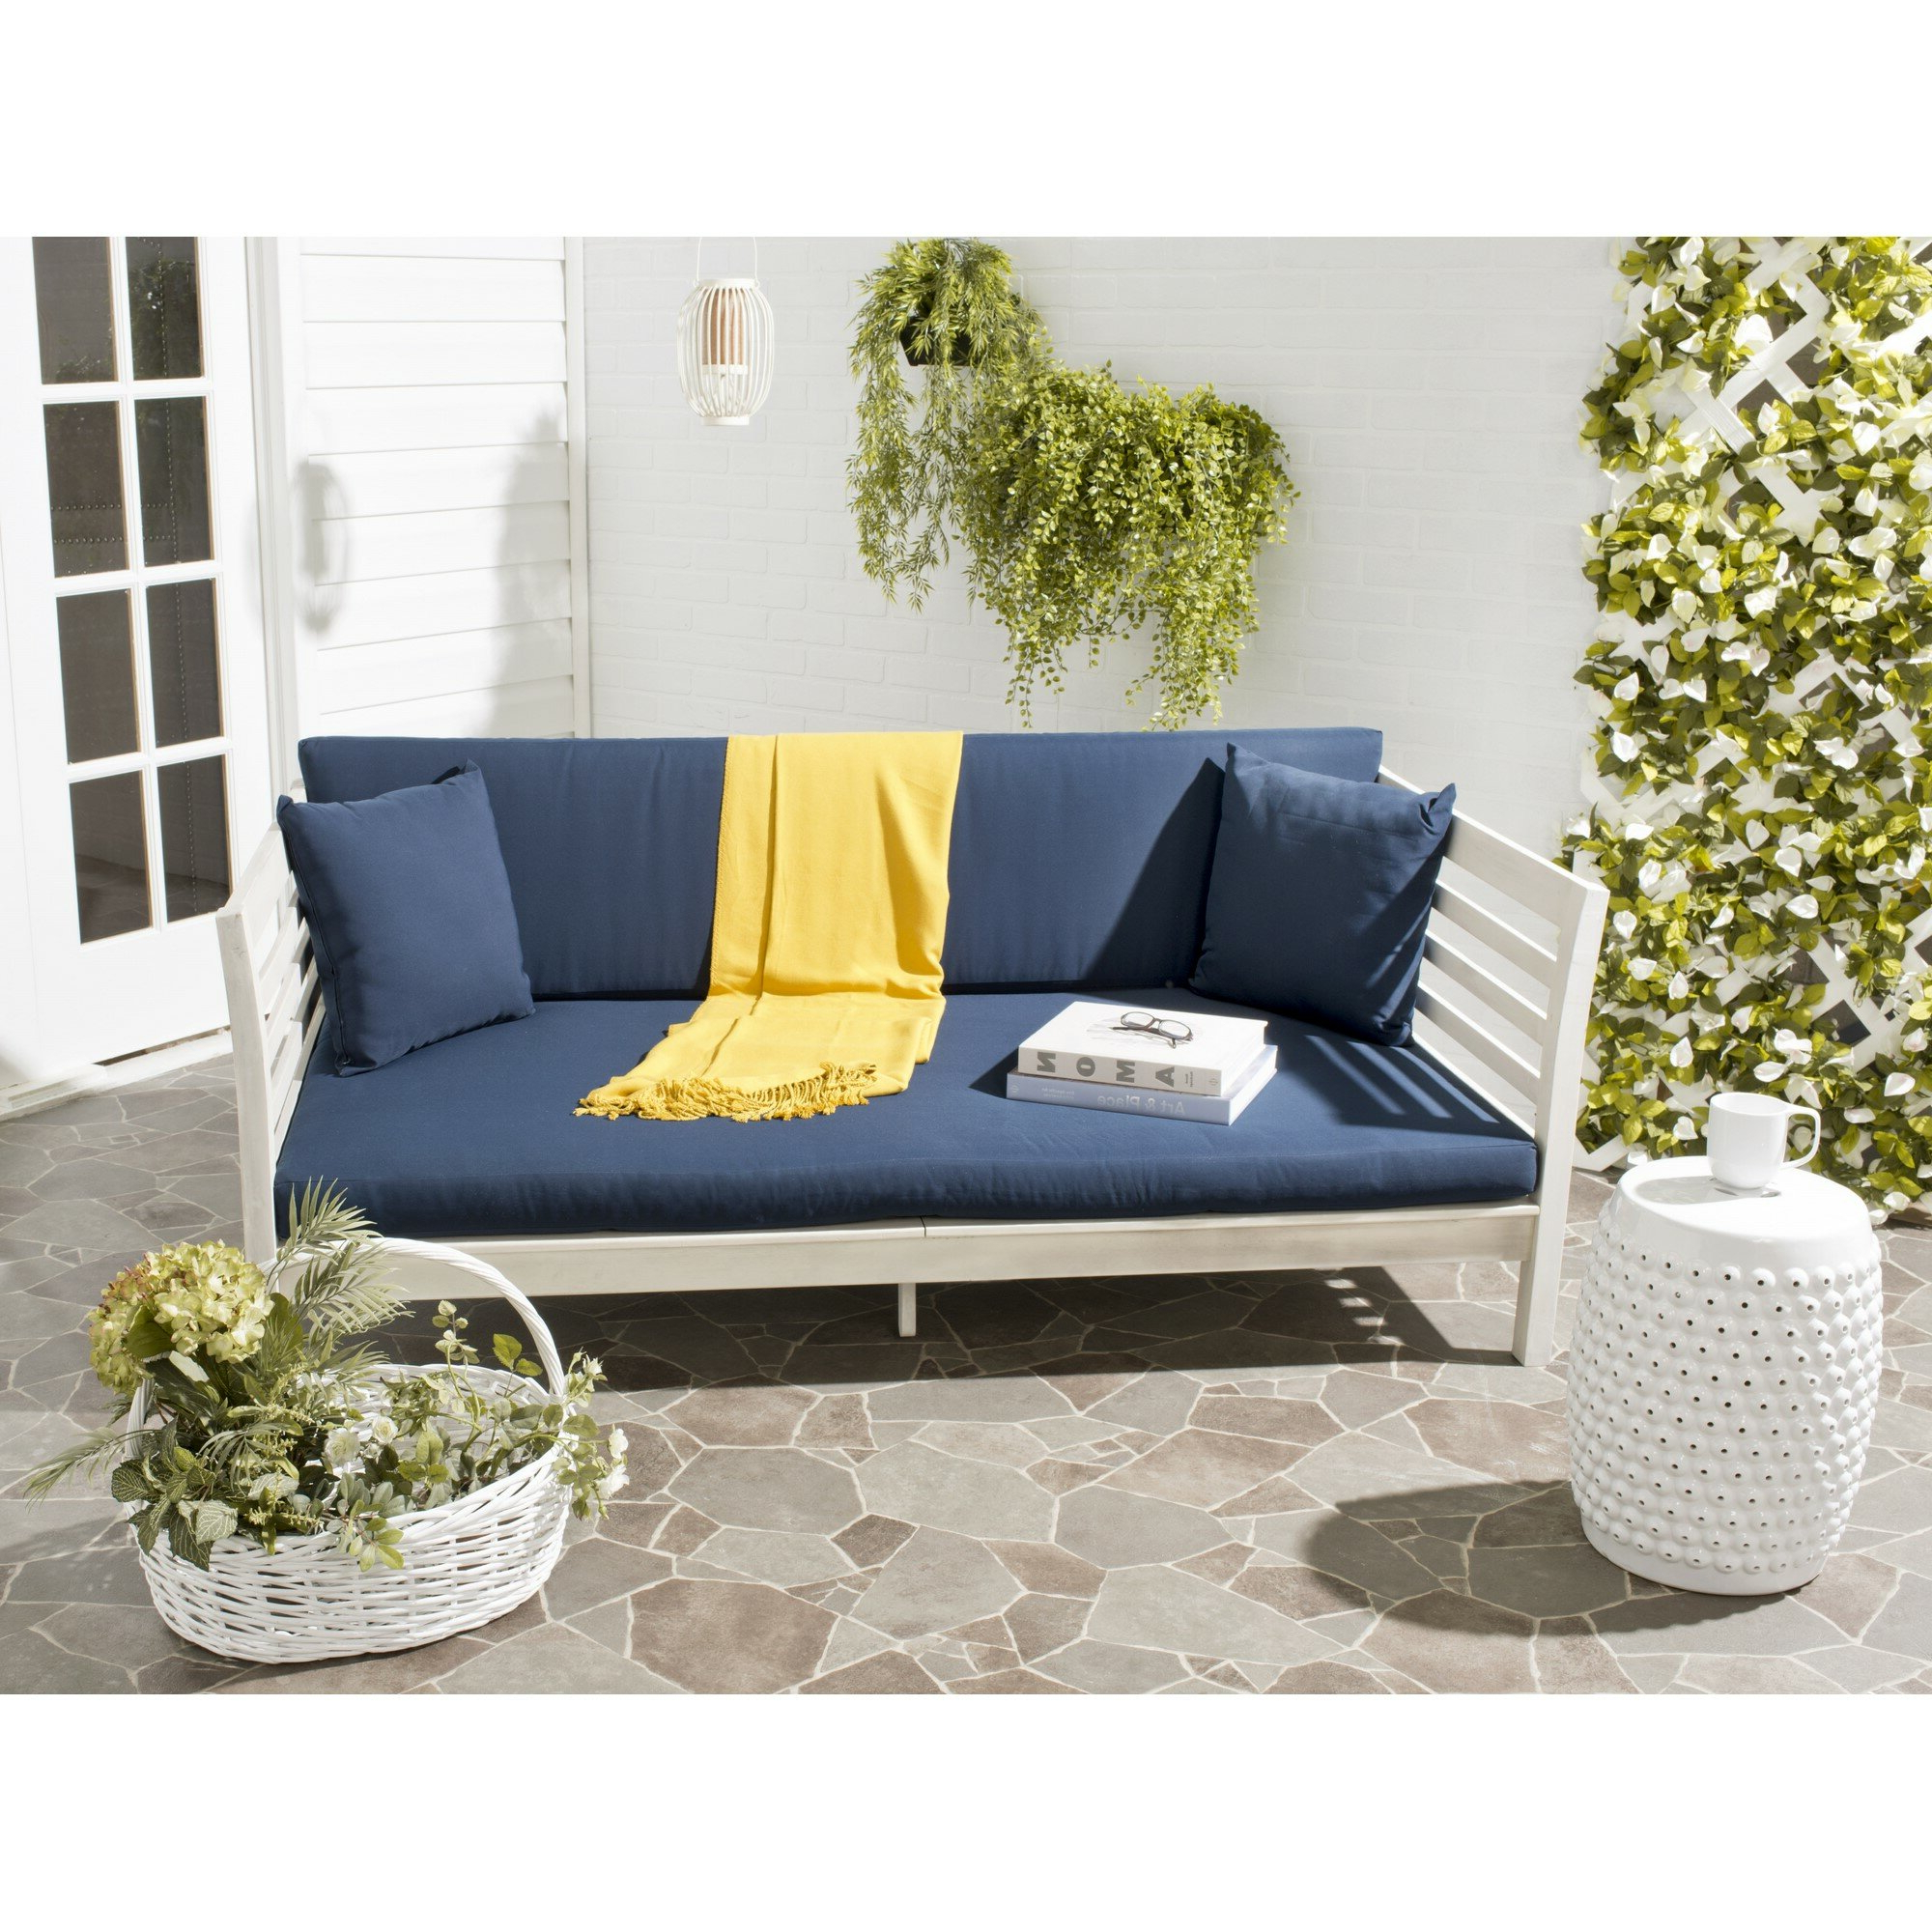 Preferred Bodine Patio Daybeds With Cushions With Regard To Bodine Patio Daybed With Cushions (Gallery 4 of 25)